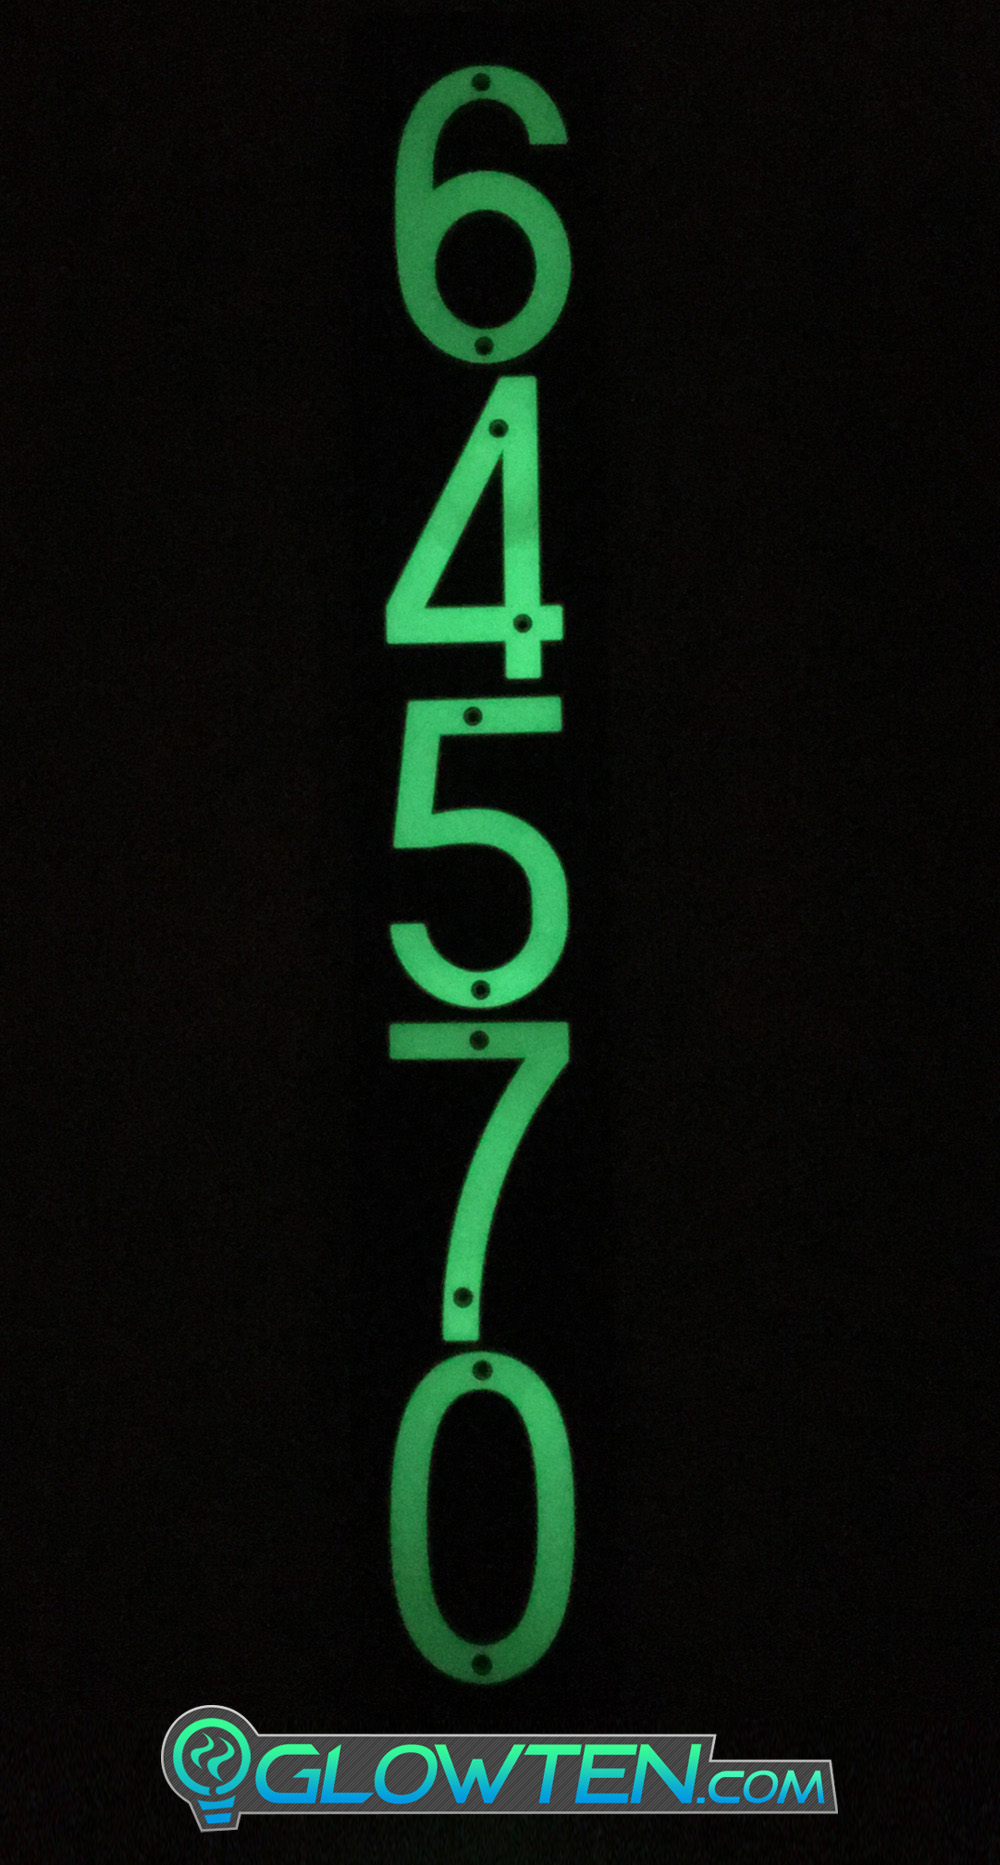 GLOWTEN.com - Glow In The Dark House Address Numbers Customization Plaque Backboard Natural Glow Help Your Doordash Ubereats Delivery Guy See Your Place FIVE 5 NUMBERS with BLACK PLAQUE BACKING Glow In Dark House Address Number Vertical Eco Friendly Photoluminescent Sign ABS Material Price For Whole Set Decor Advertising picture photo cap preview pic image search 2